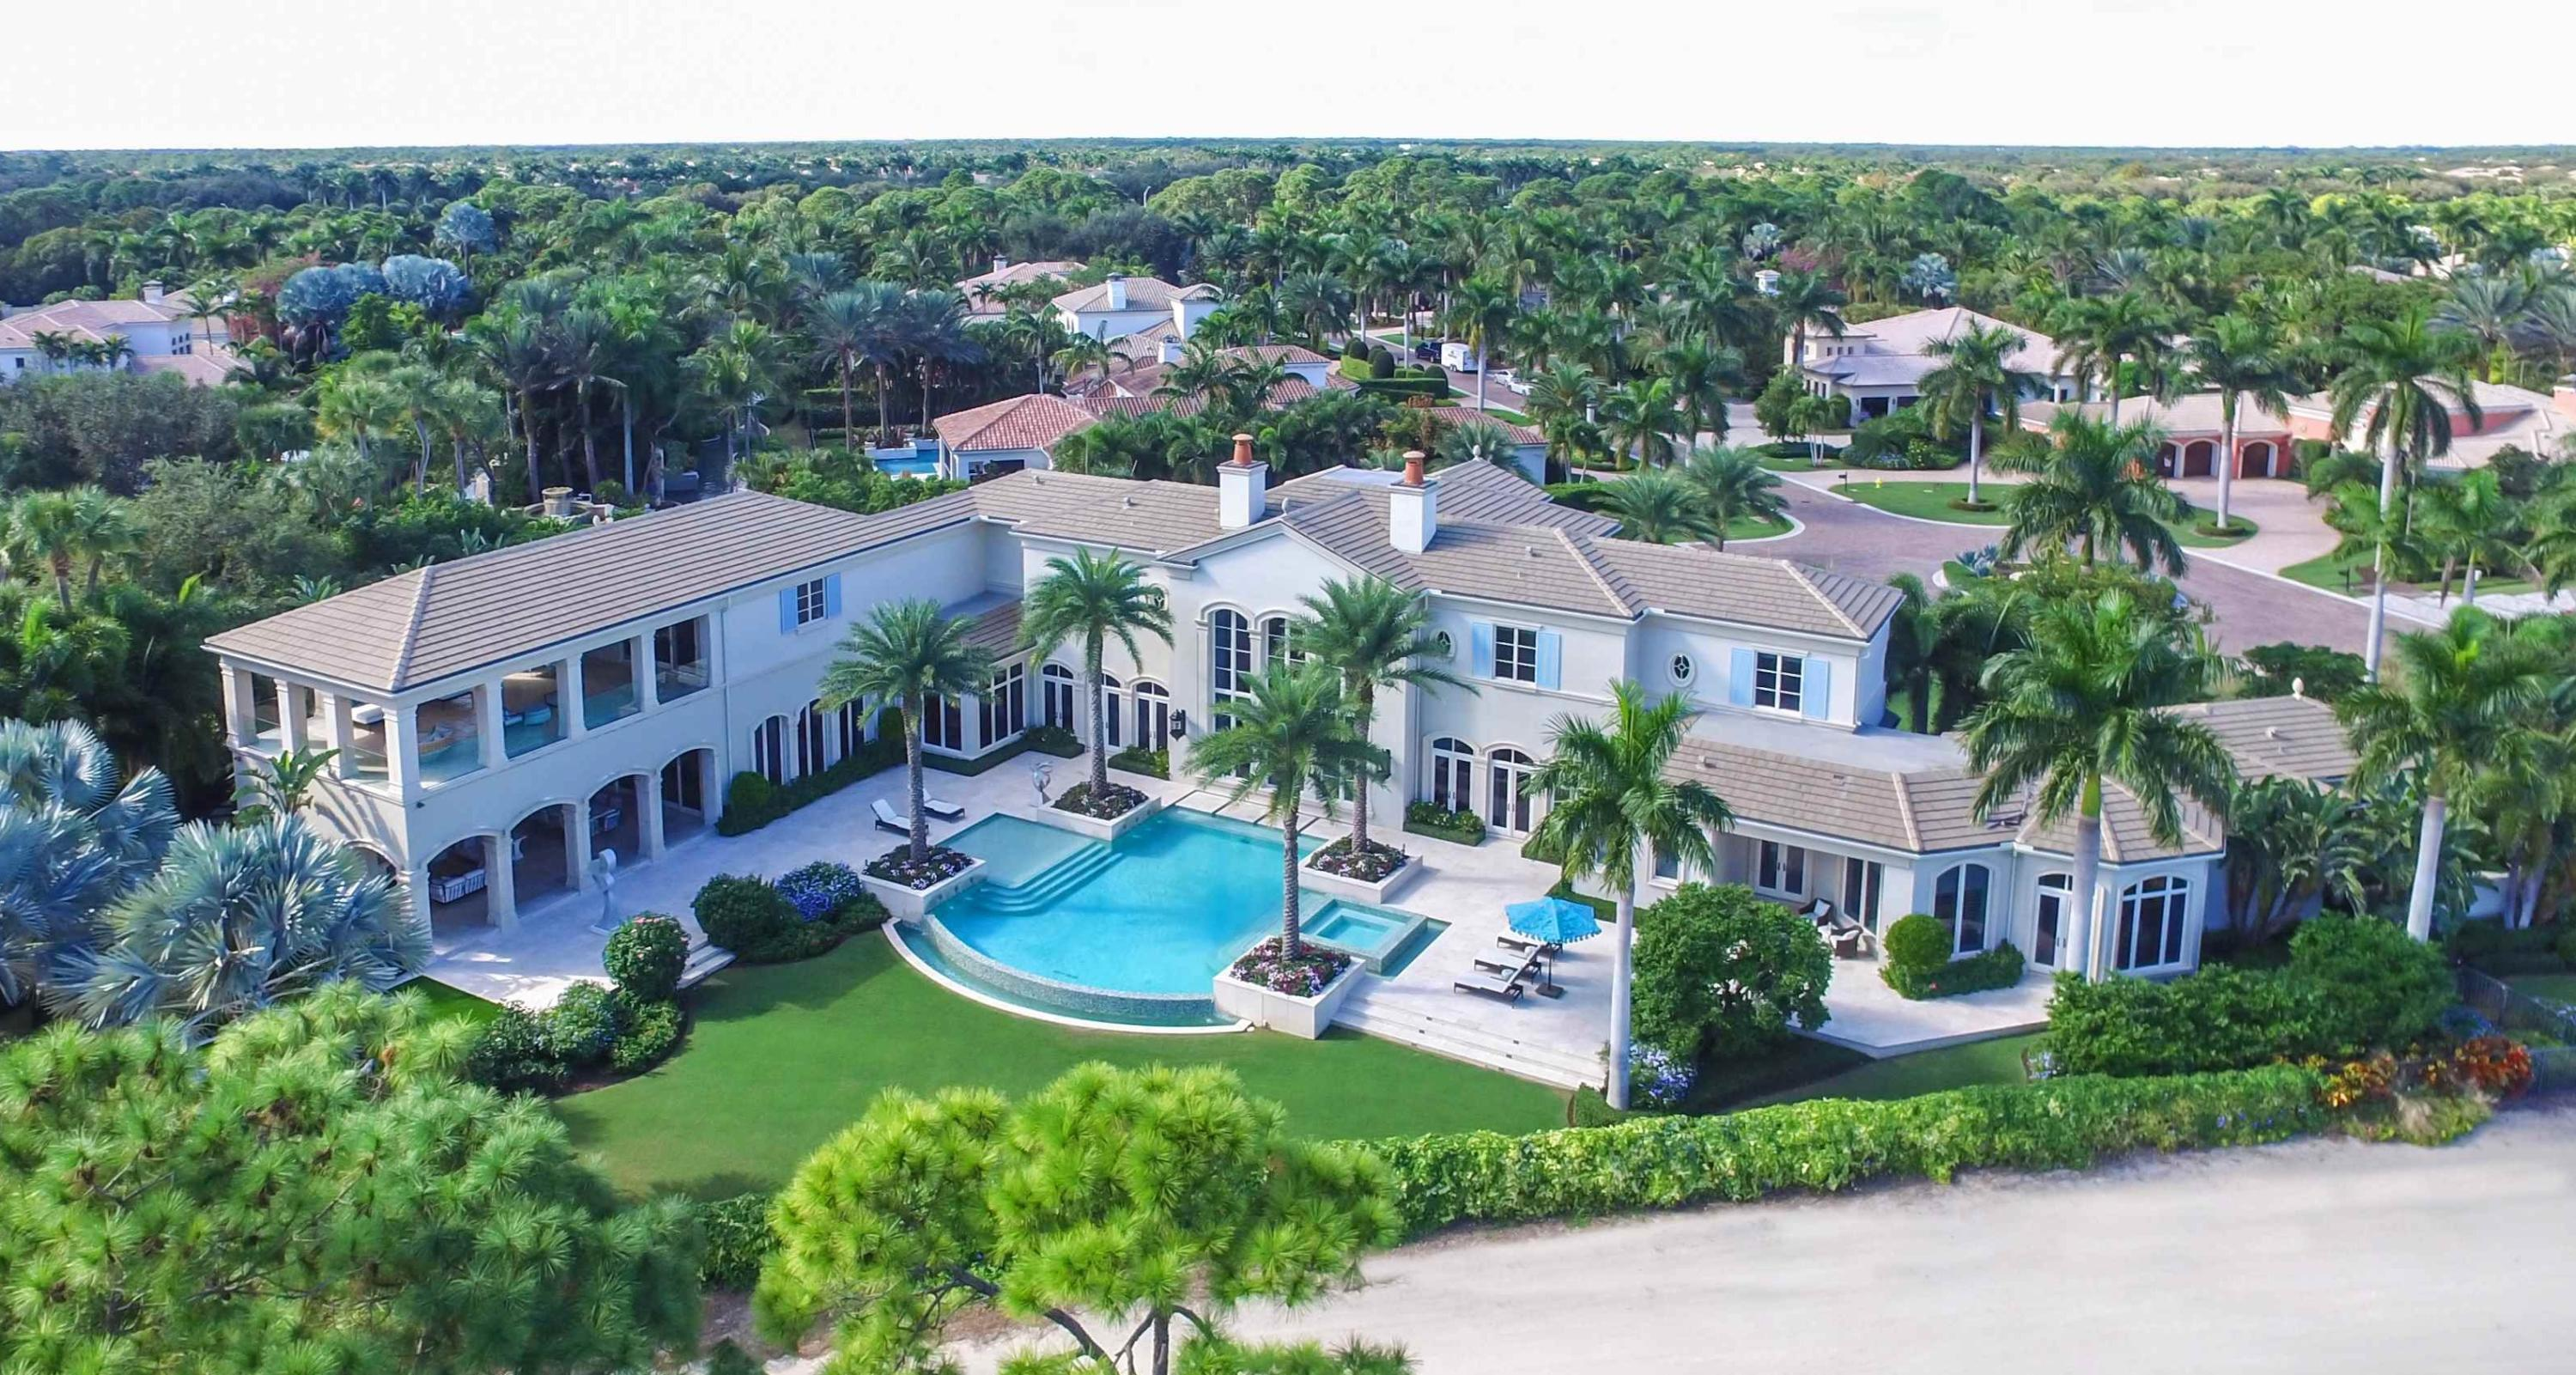 New Home for sale at 11748 Bella Donna Court in Palm Beach Gardens